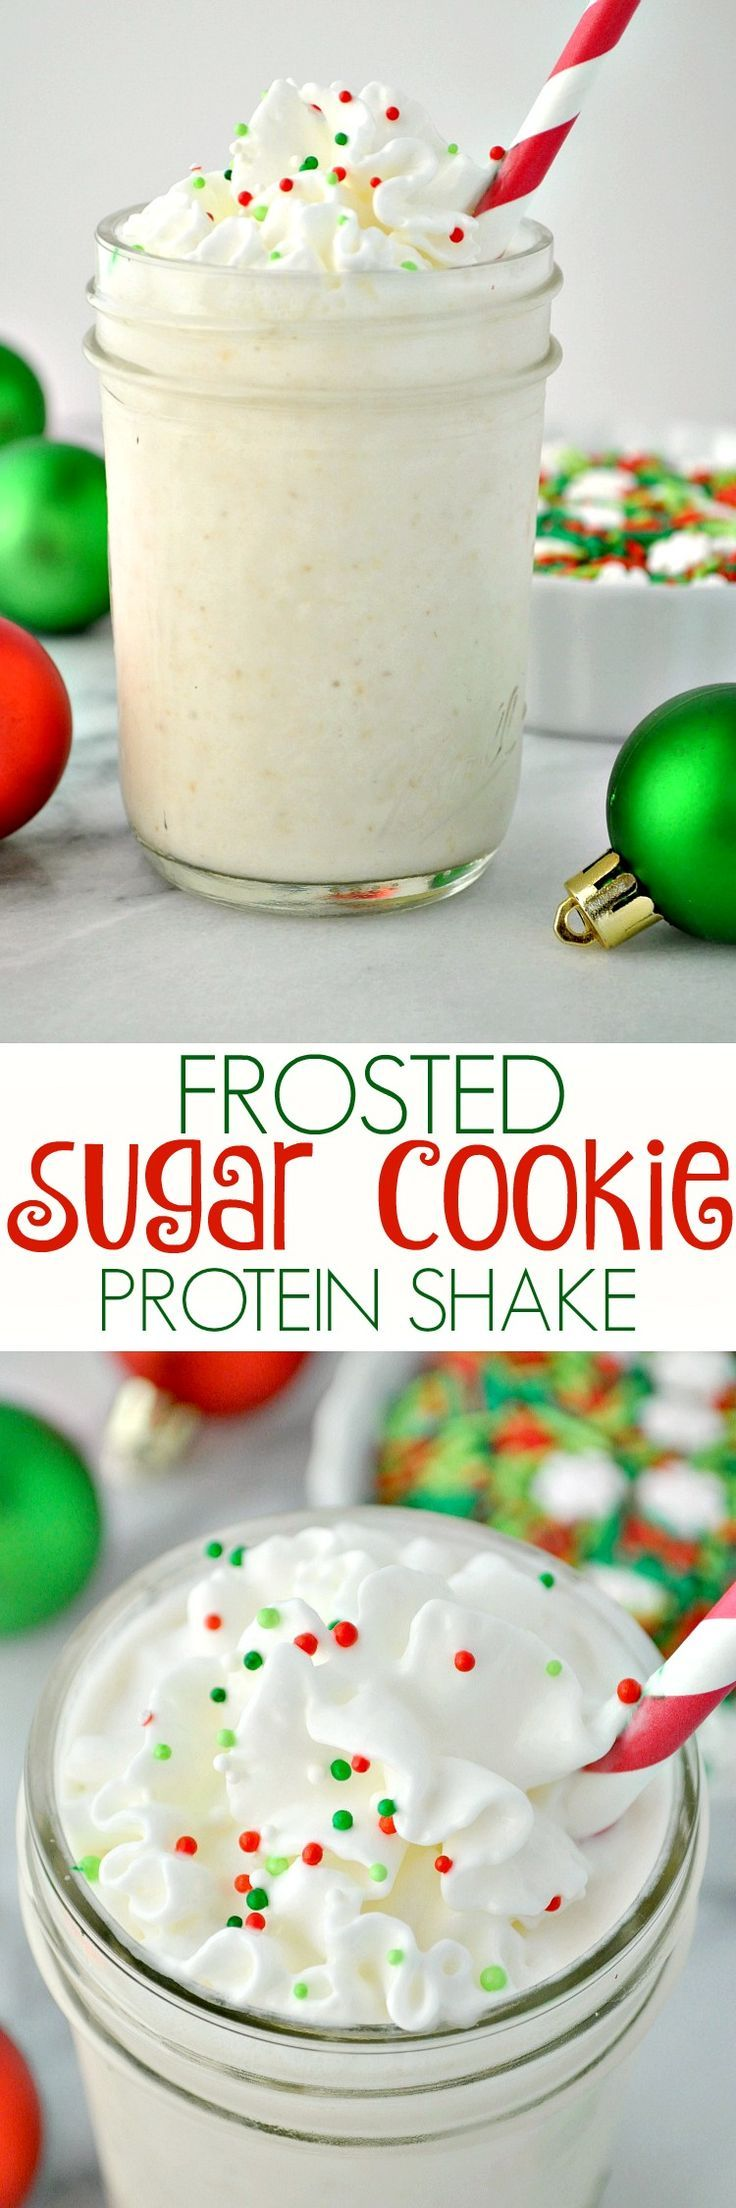 Celebrate the tastes of the season with a Frosted Sugar Cookie Protein Shake! It's a healthy breakfast, snack, or dessert to power you through the holidays!